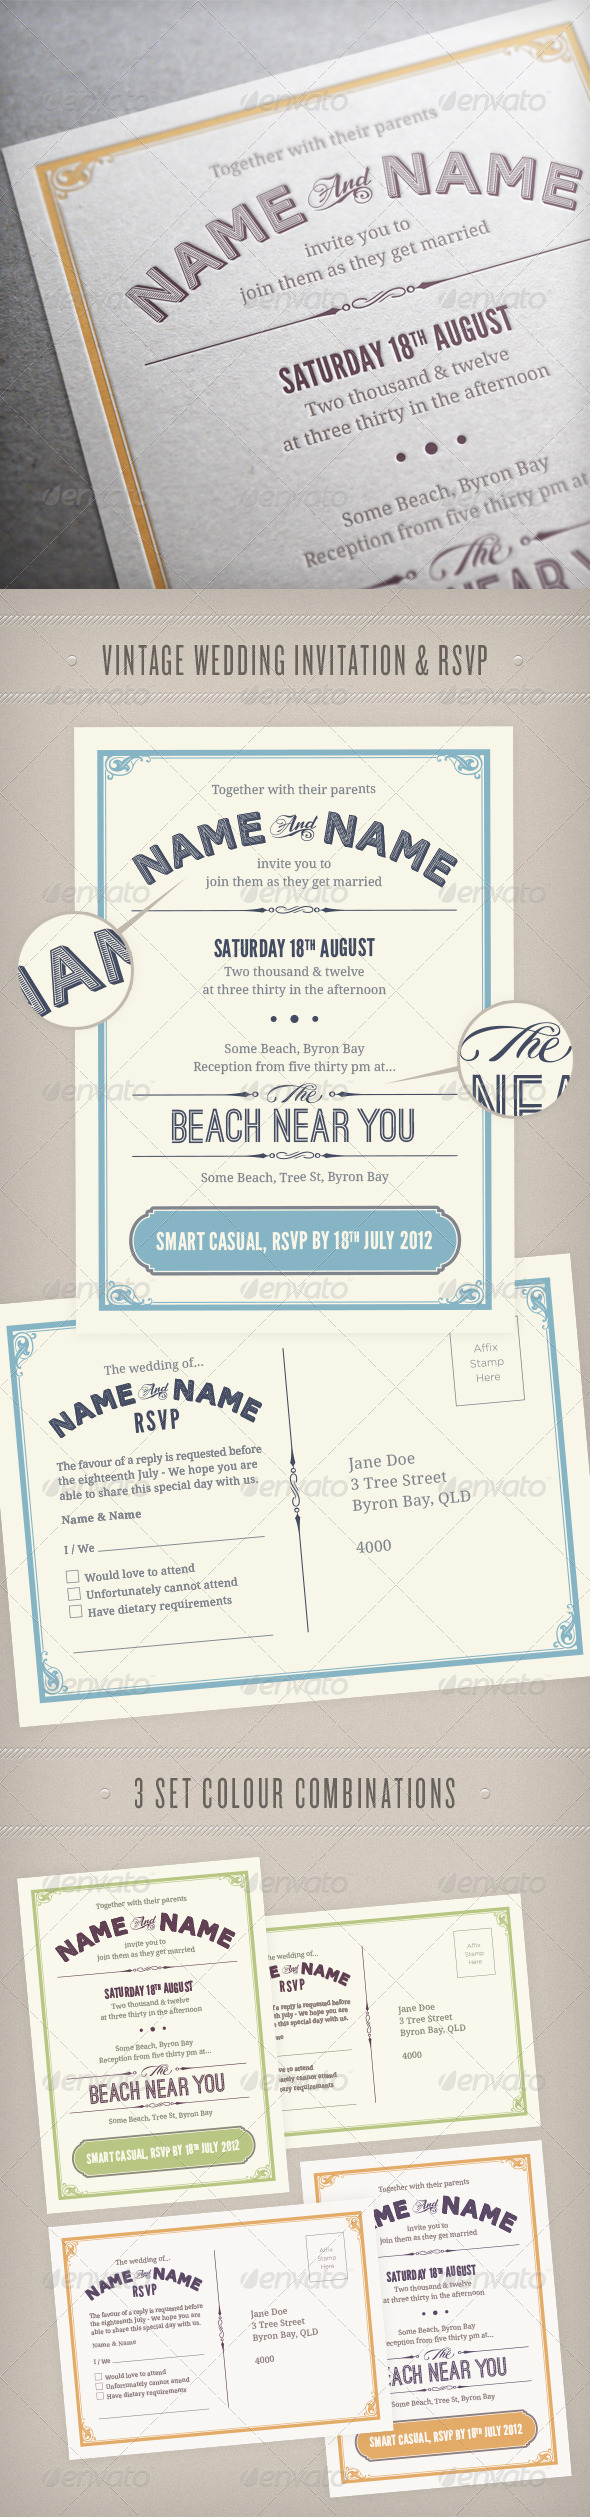 Vintage Wedding Invitation & RSVP - Weddings Cards & Invites